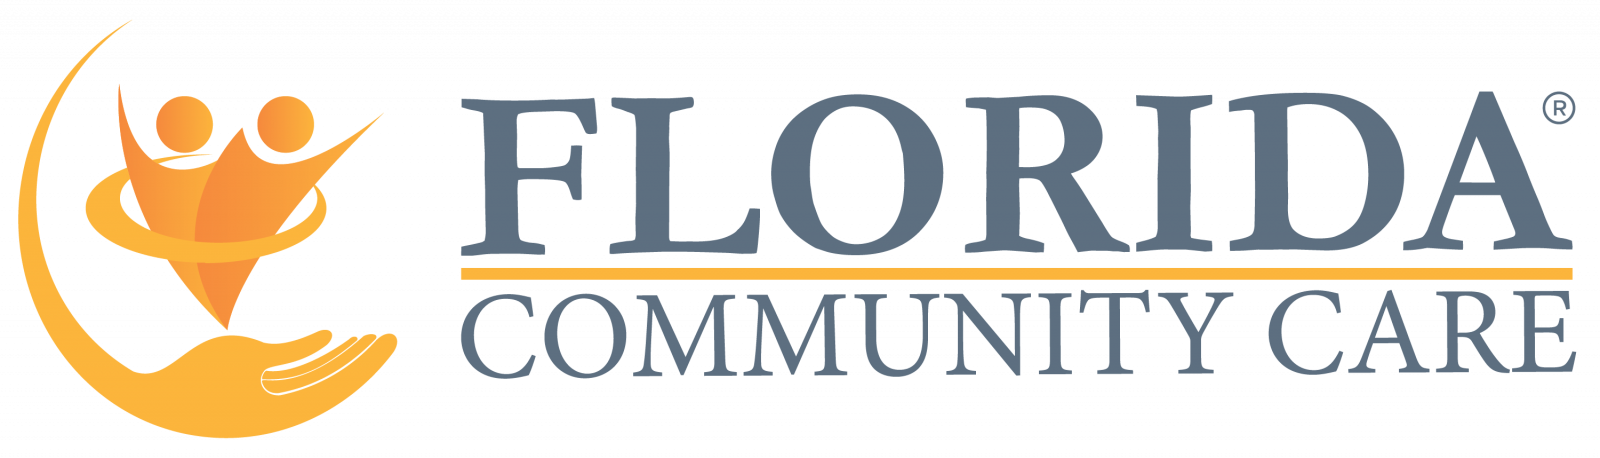 Florida community care